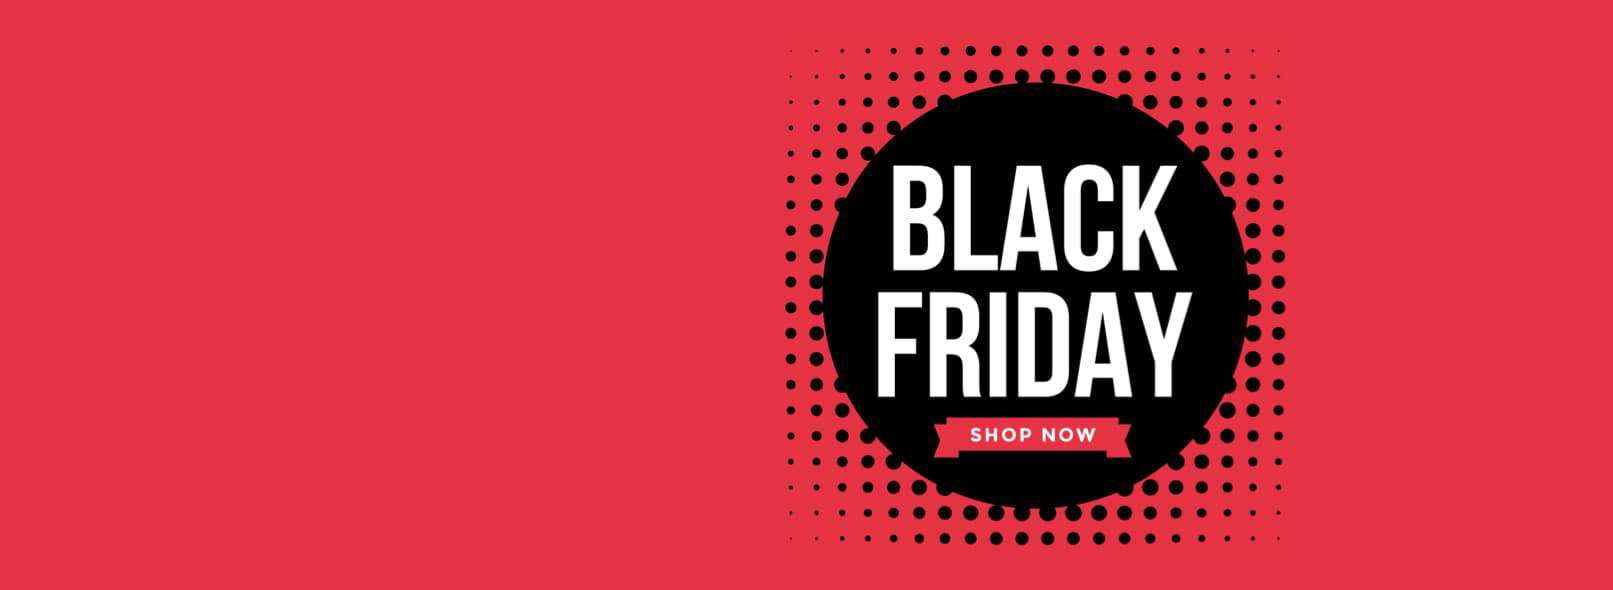 Black Friday Baner